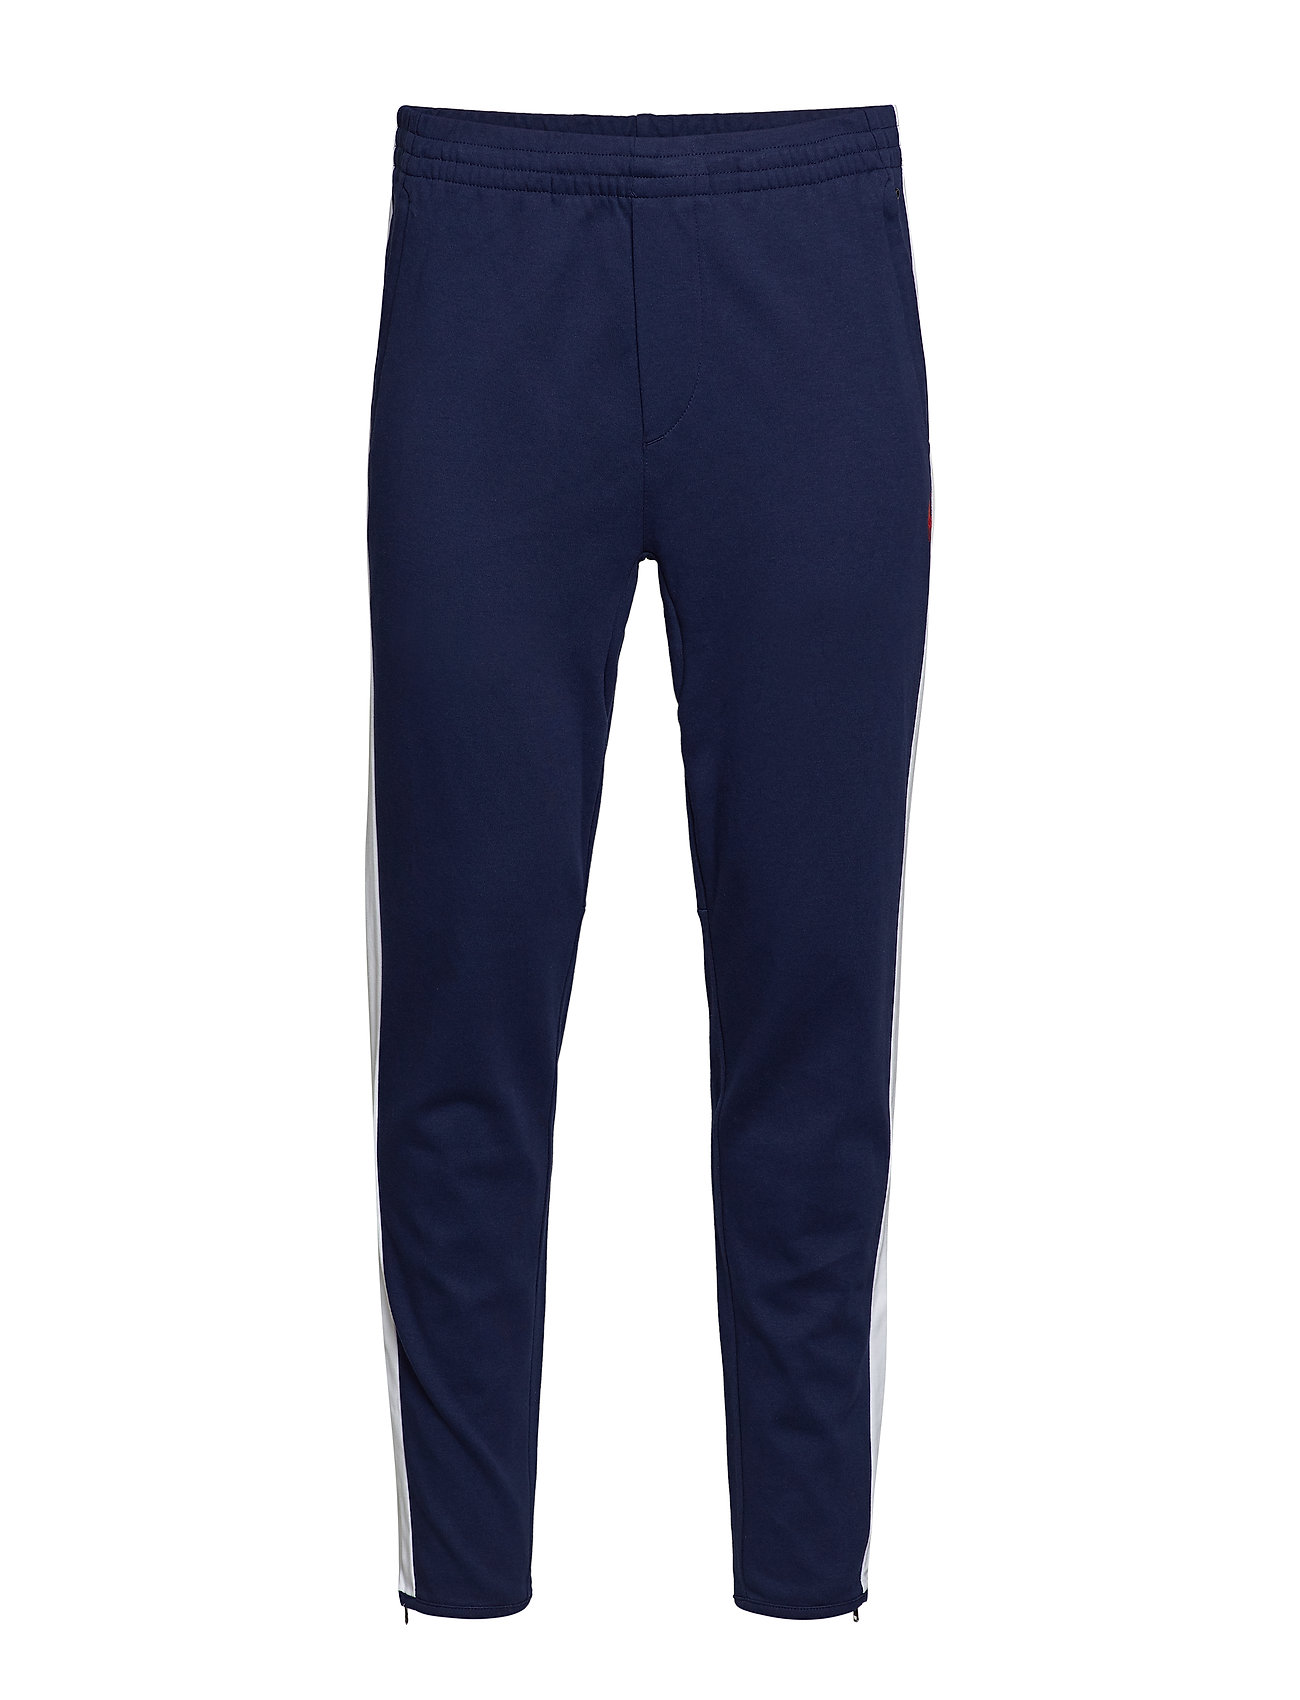 Polo Ralph Lauren PANTM5-ATHLETIC-PANT - FRENCH NAVY